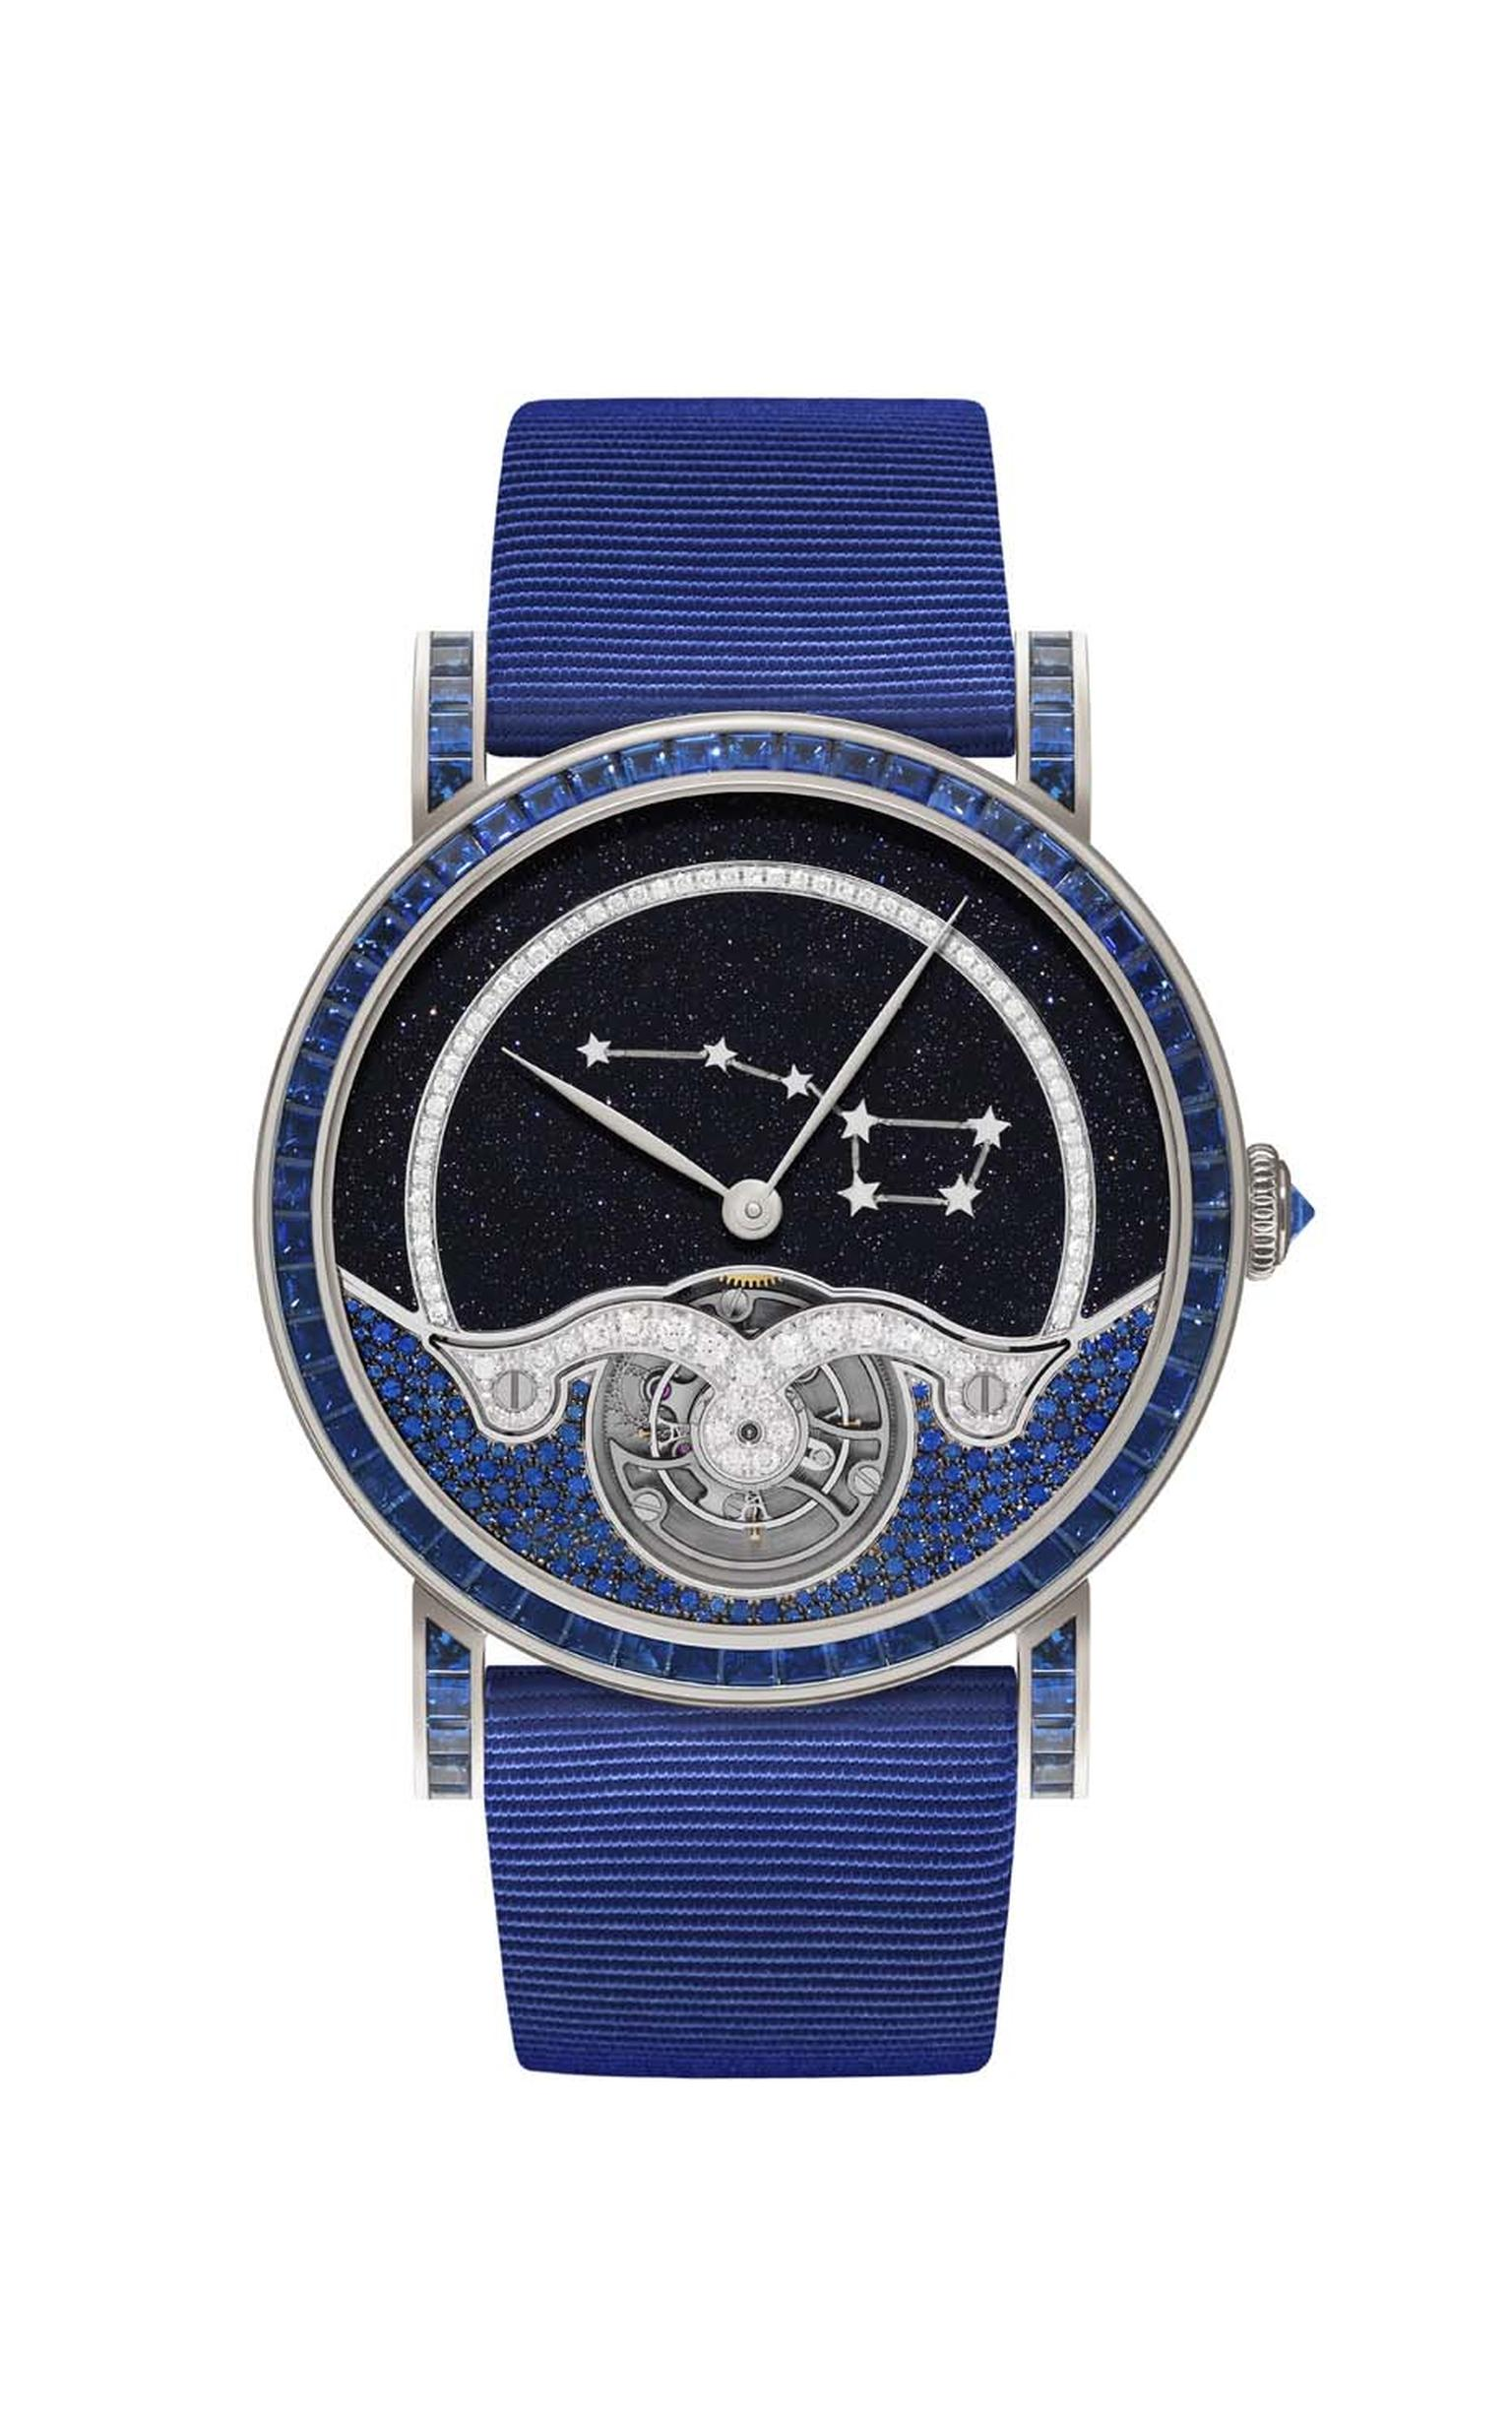 Delaneau Rondo Tourbillon Ursa Major Constellation in White Gold with Sapphire Baguette Bezel